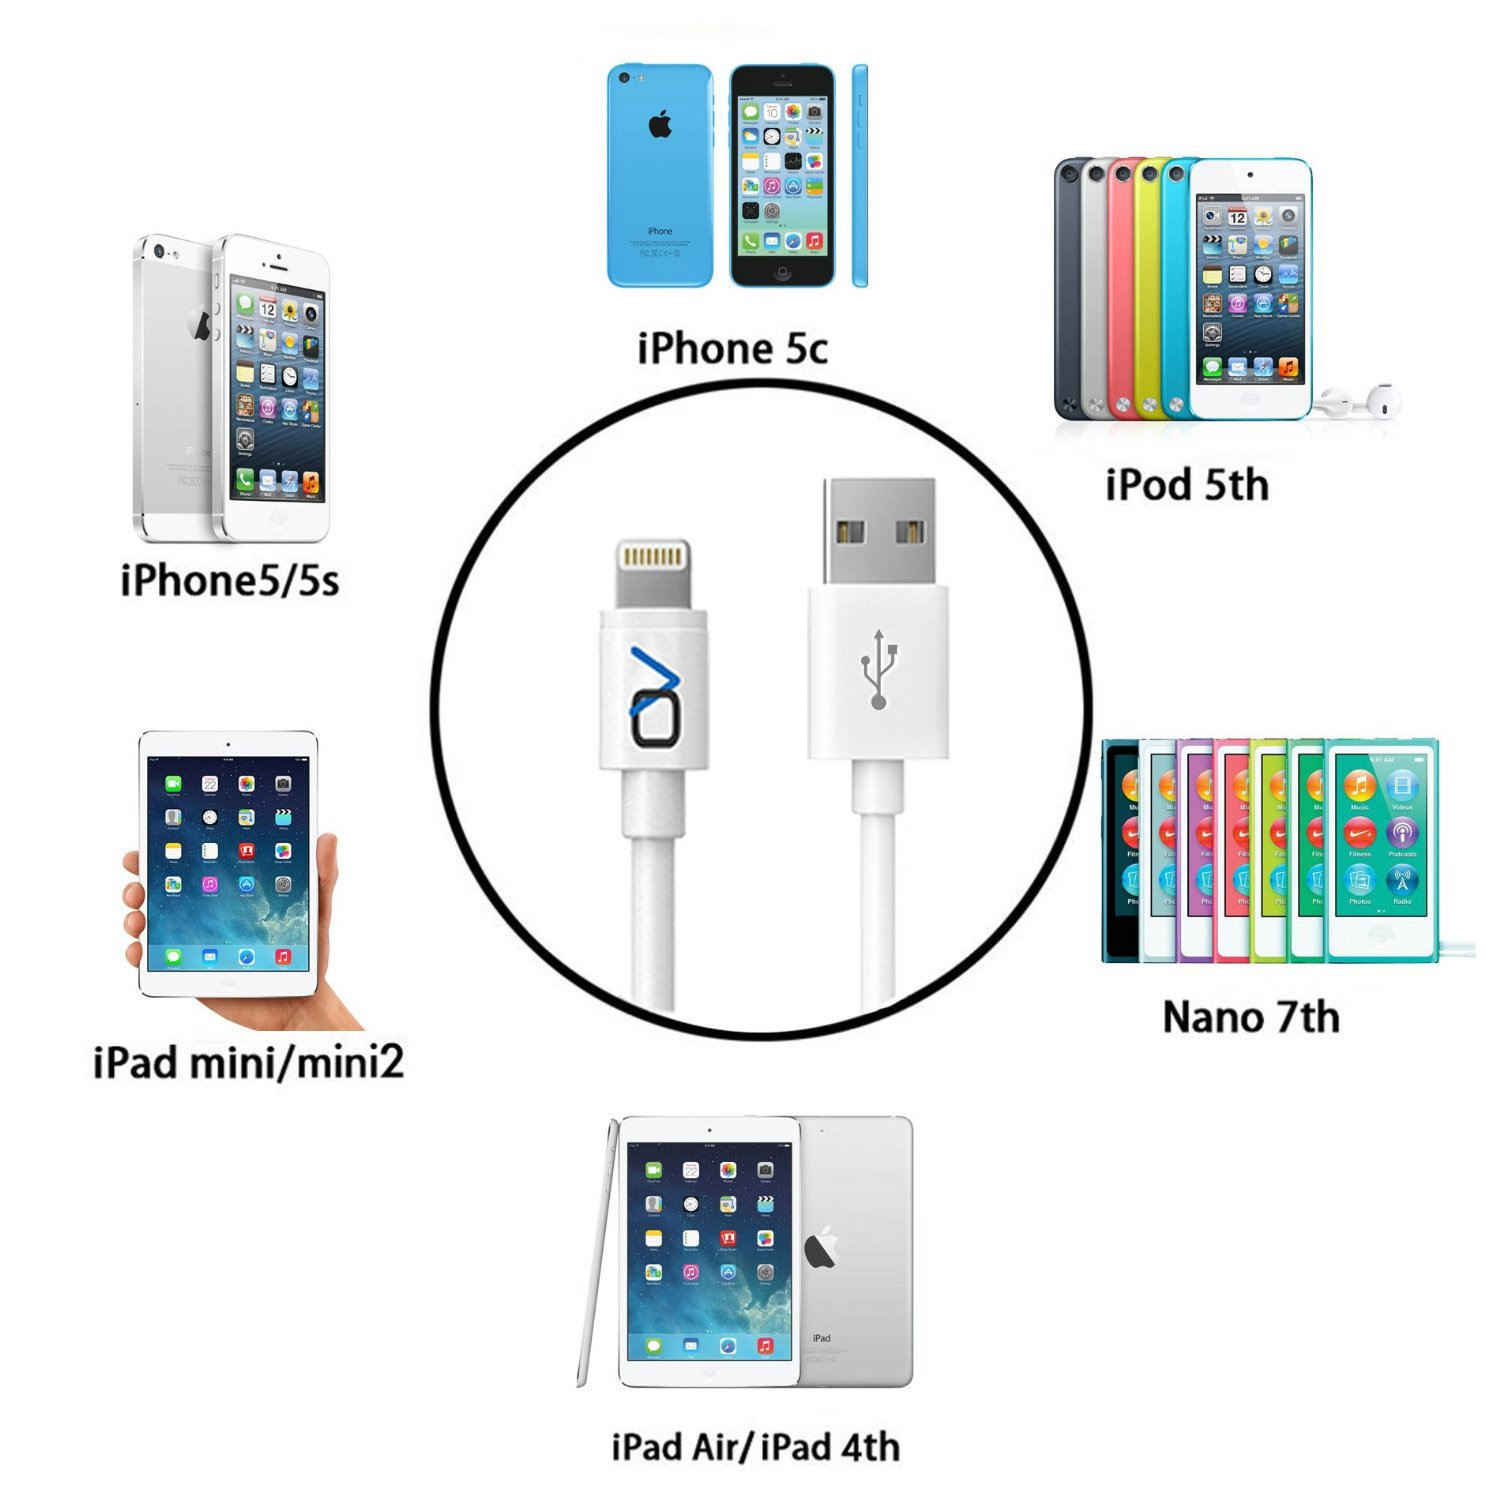 Ipod Touch 5 Wiring Diagram Electrical Schematics Schematic 5g Trusted Diagrams Dock Chart Amazon Com Onyxvolt Cable Charging Connector For